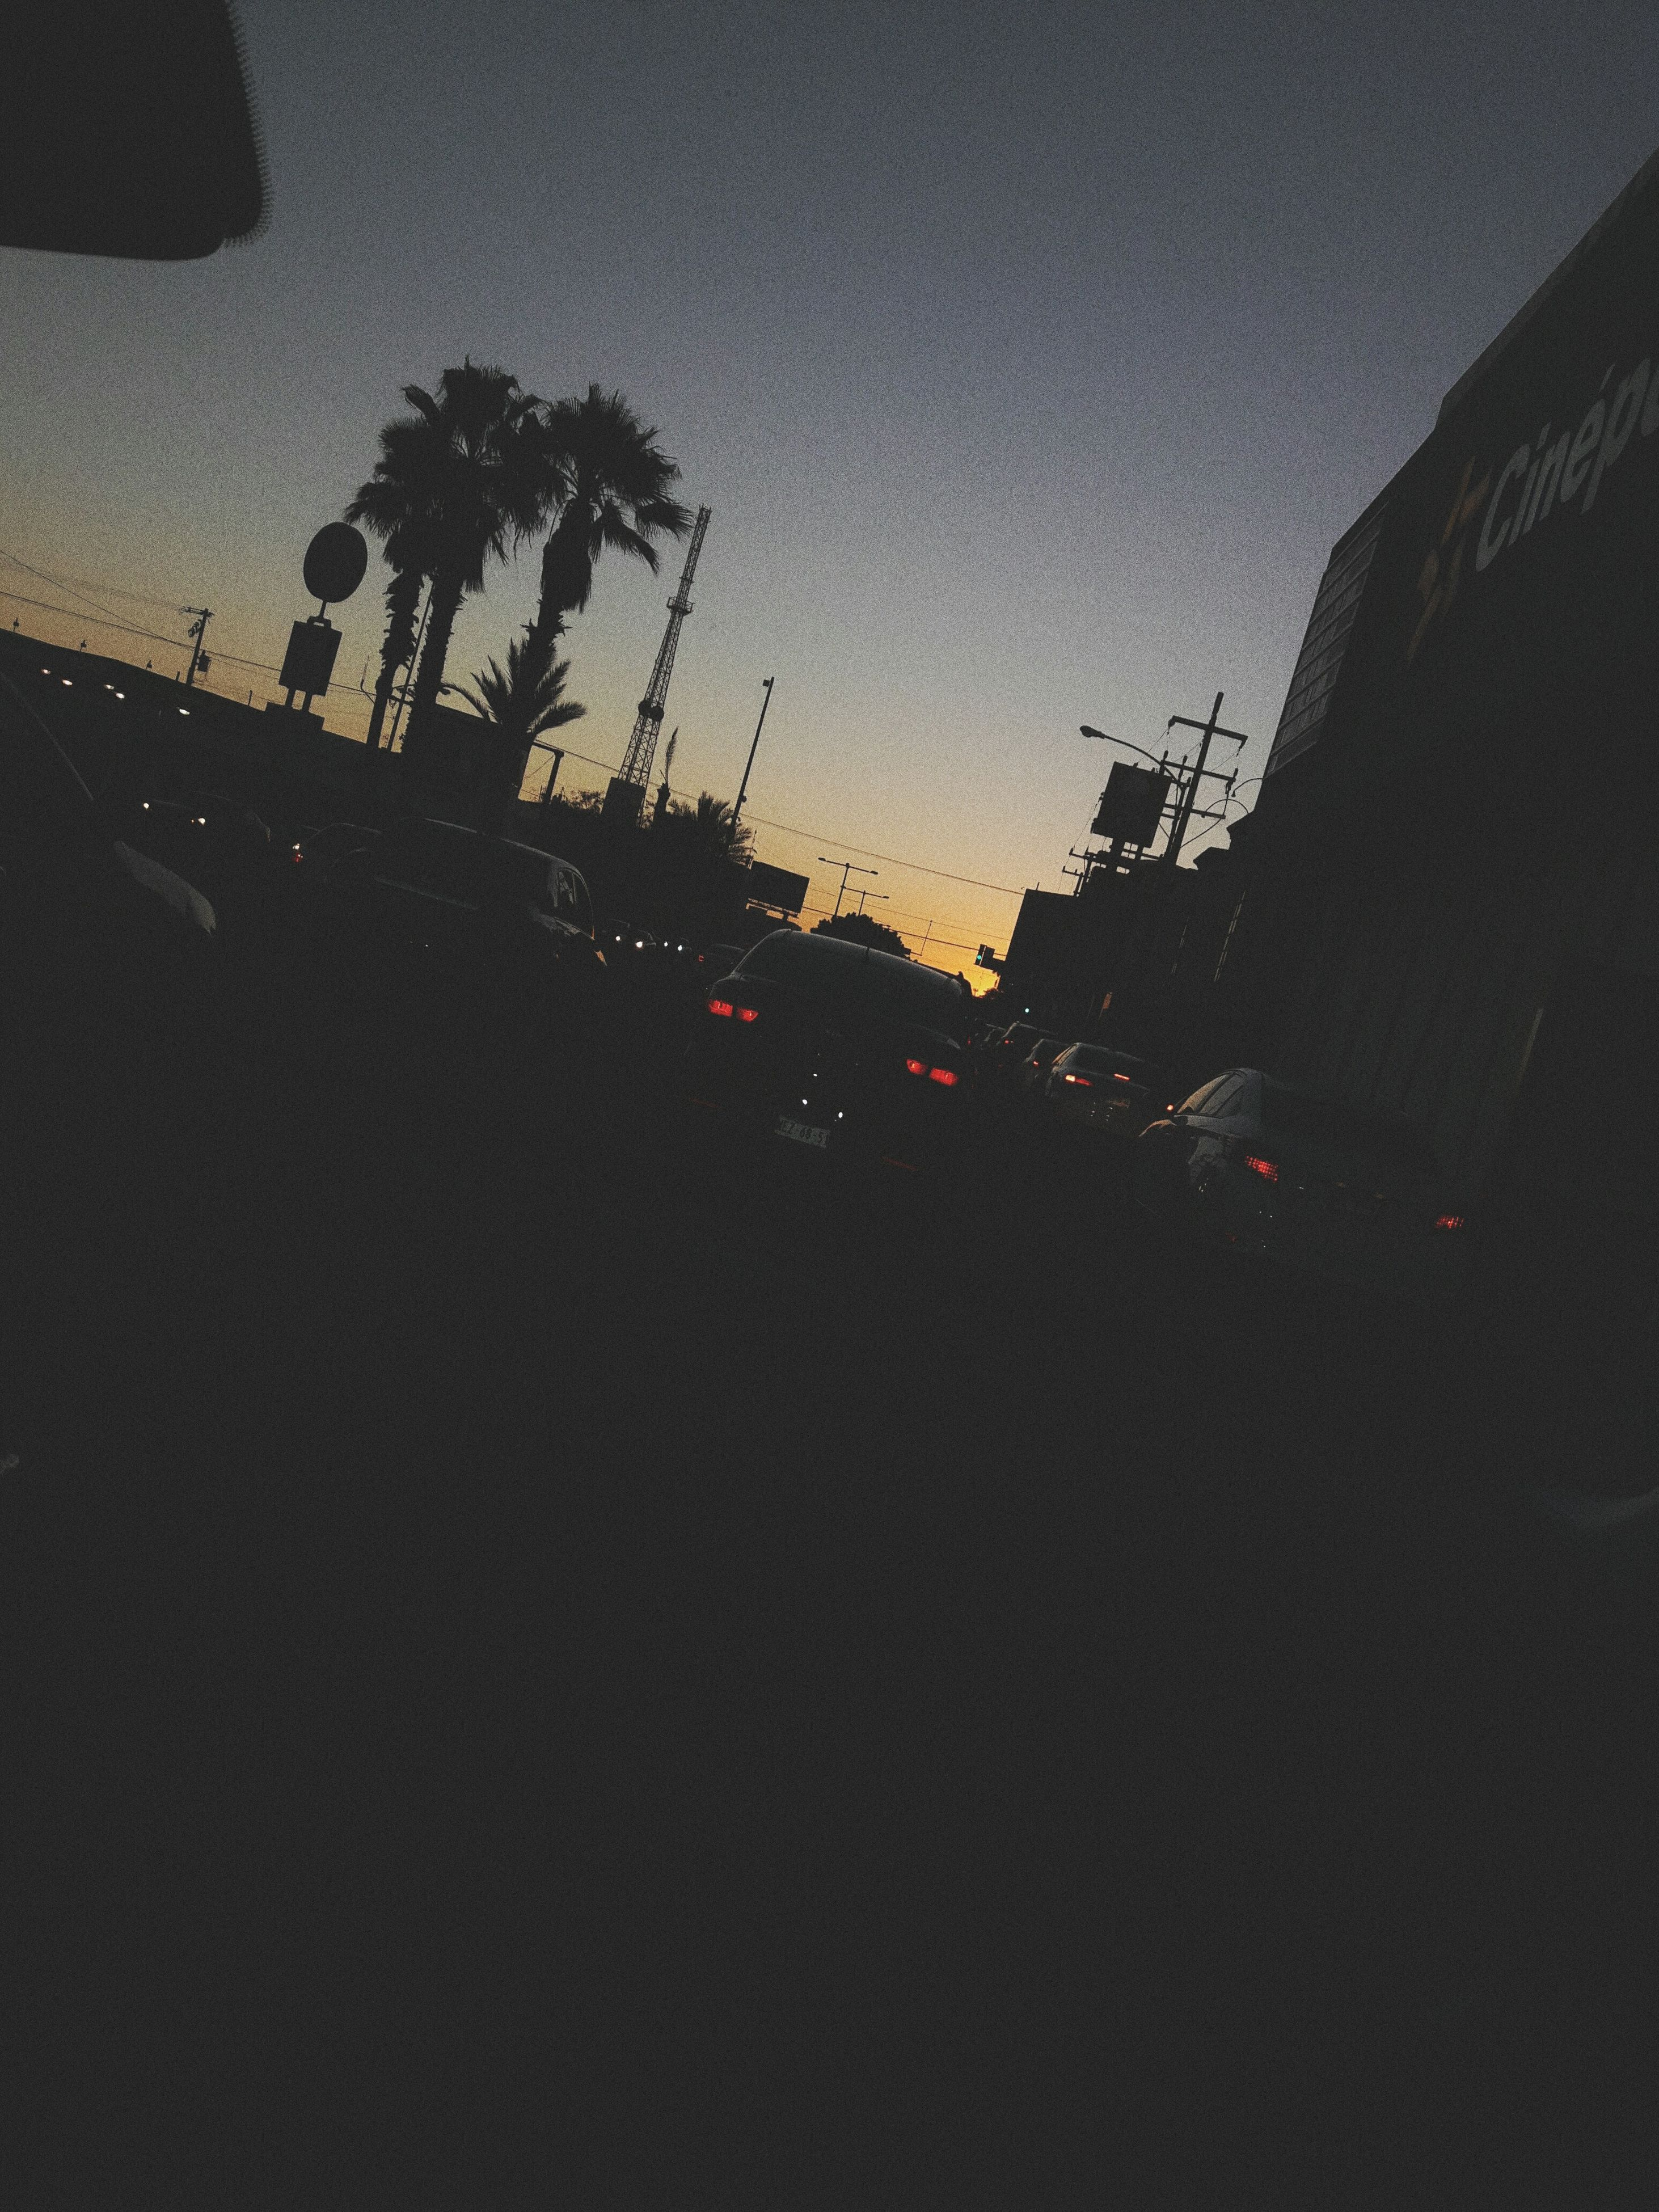 car, land vehicle, transportation, mode of transport, road, street, traffic, tree, car interior, windshield, palm tree, car point of view, sky, no people, outdoors, clear sky, sunset, city, nature, day